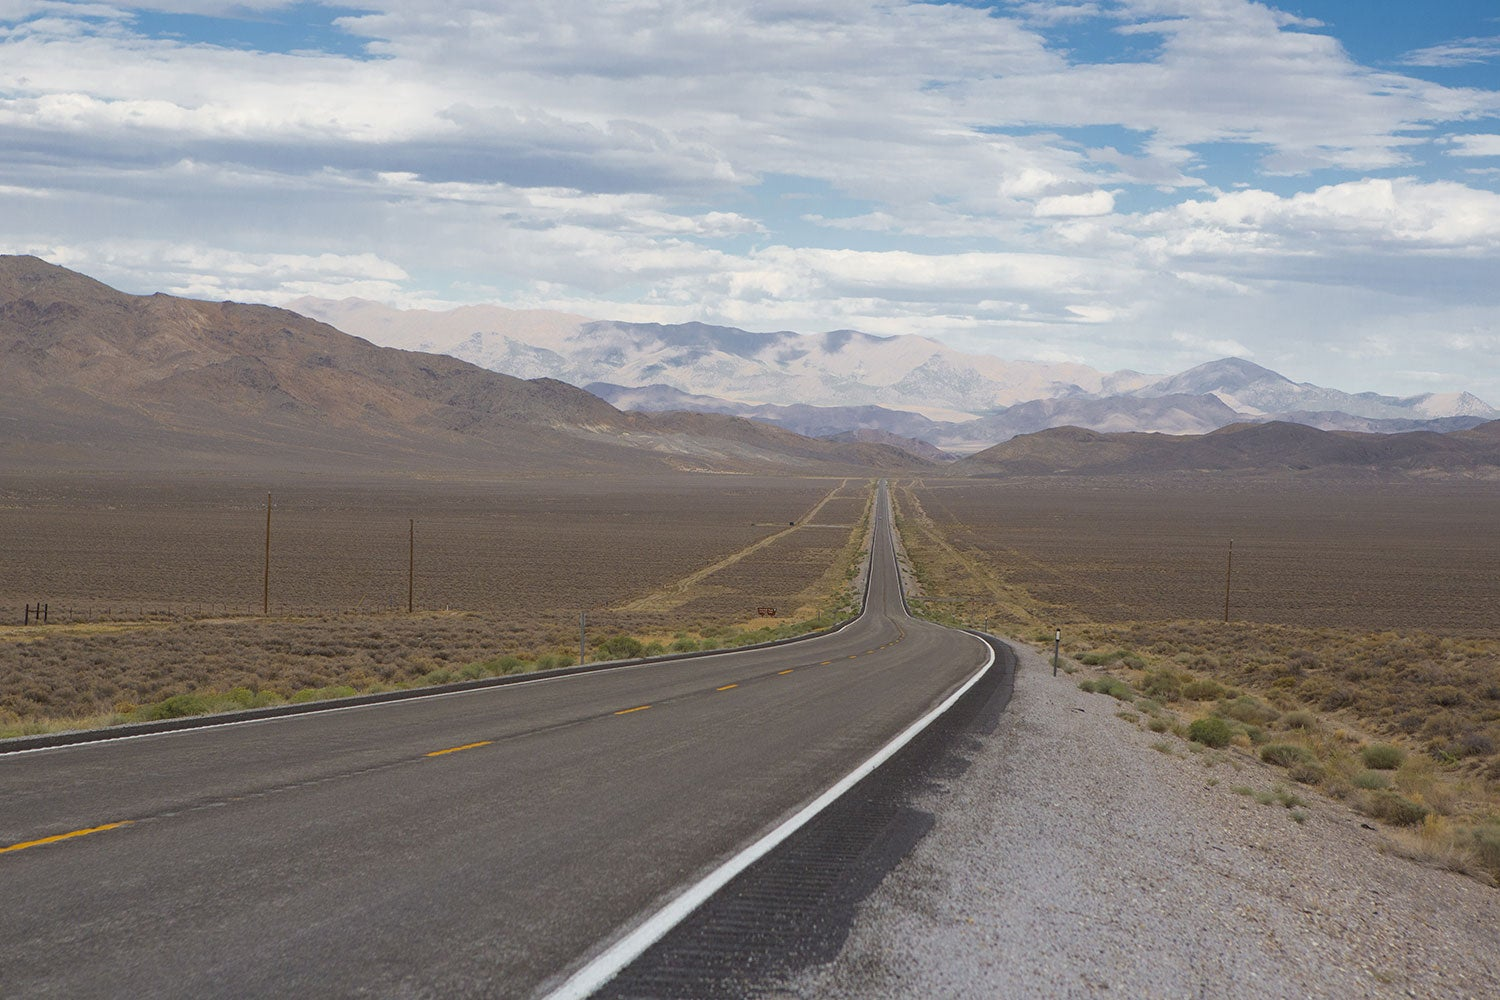 a stretch of Route 50, cutting through featureless, brown landscape with mountains in the distance.